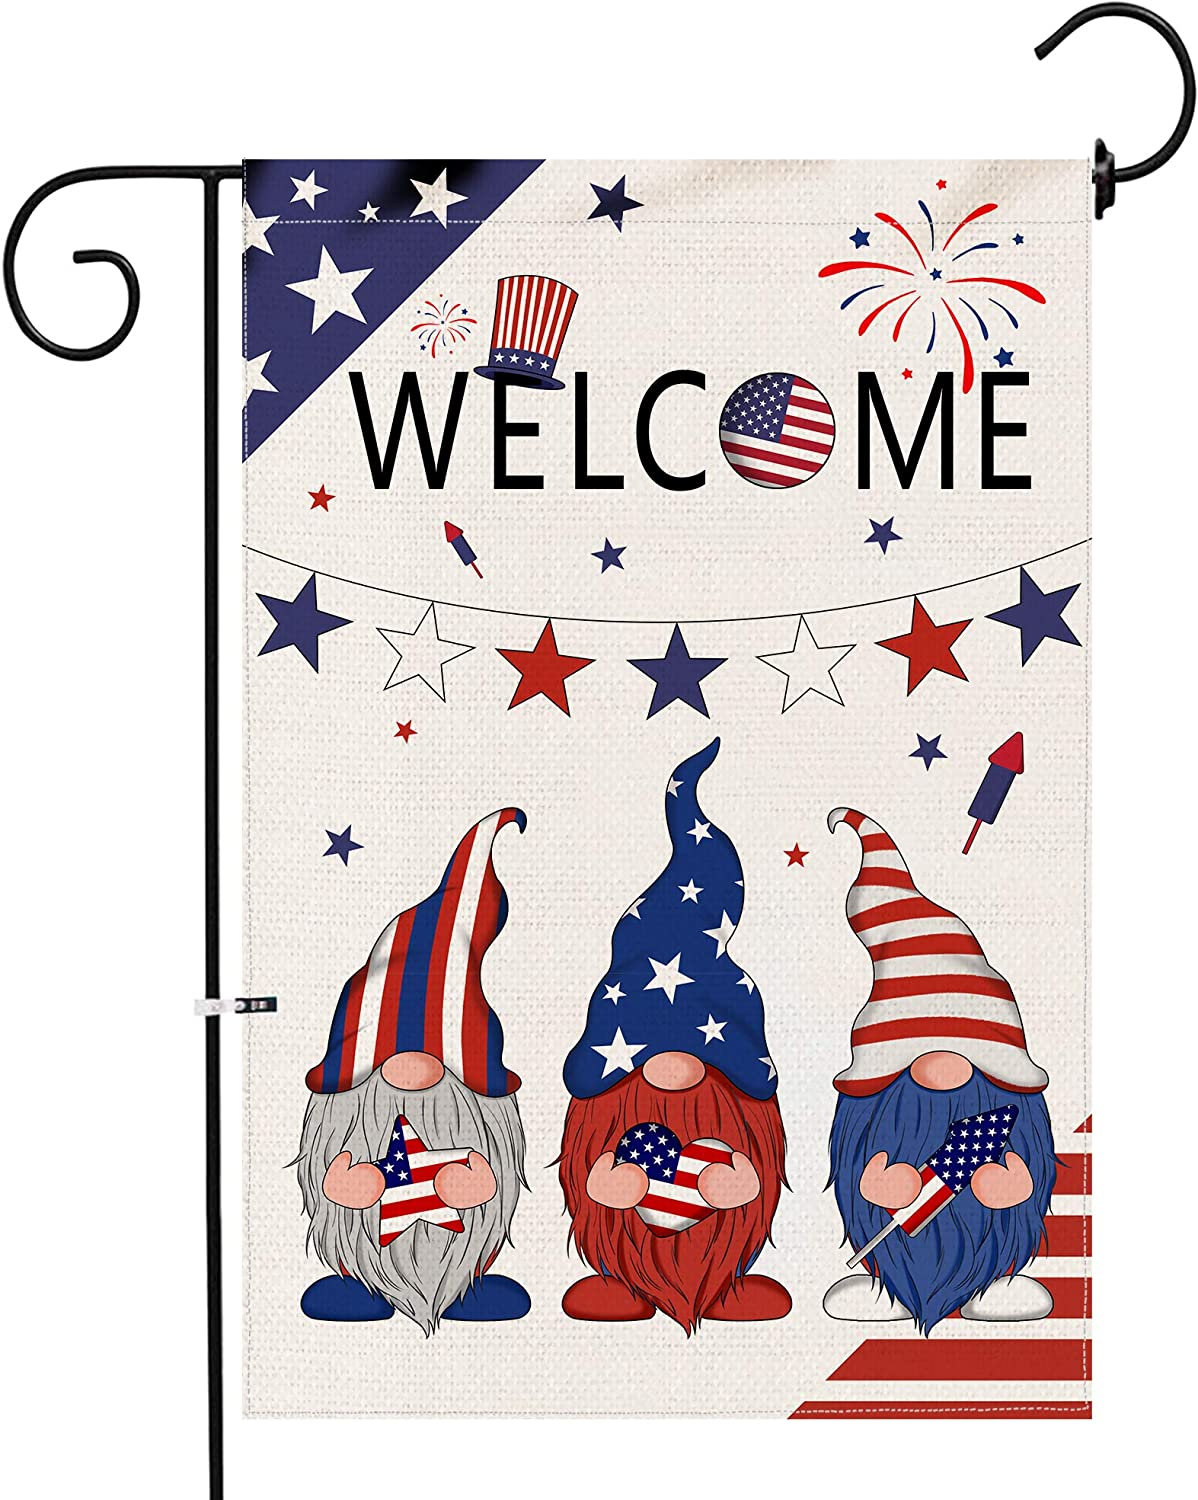 Hexagram 4th of July Welcome Gnomes Garden Flag,Burlap Patriotic Small Yard Flag 12x18 Double Sided,Outdoor American Independence Day Stars and Stripe Porch Home Memorial Day Decoration and Sign